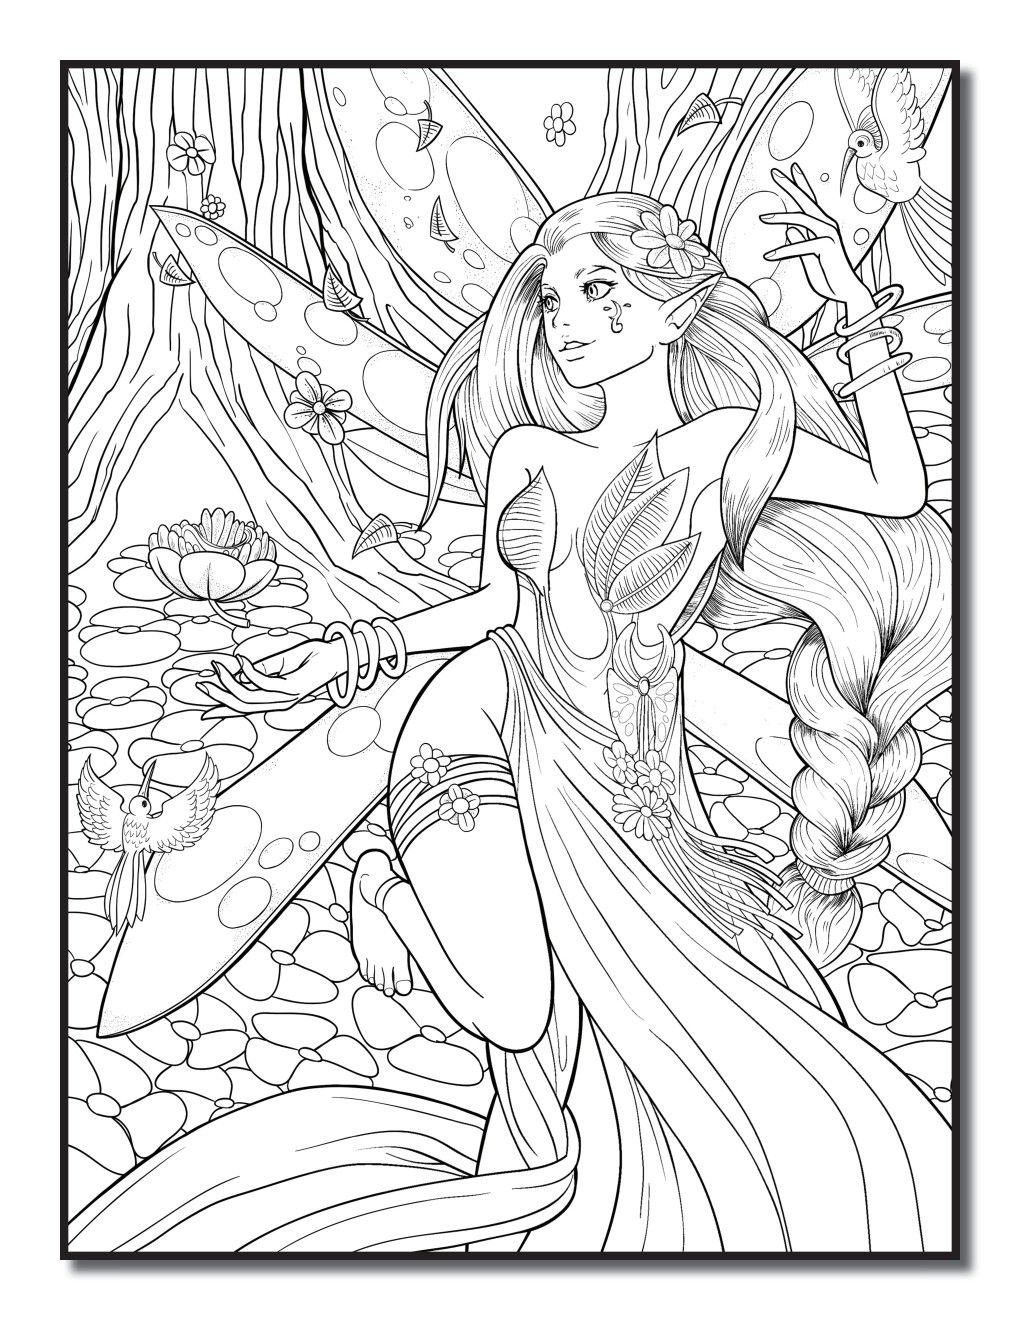 Pin By Monika Nowicka On Ulubione Ilustracje Z Kolorowanwk In 2020 Fairy Coloring Book Fairy Coloring Cute Coloring Pages